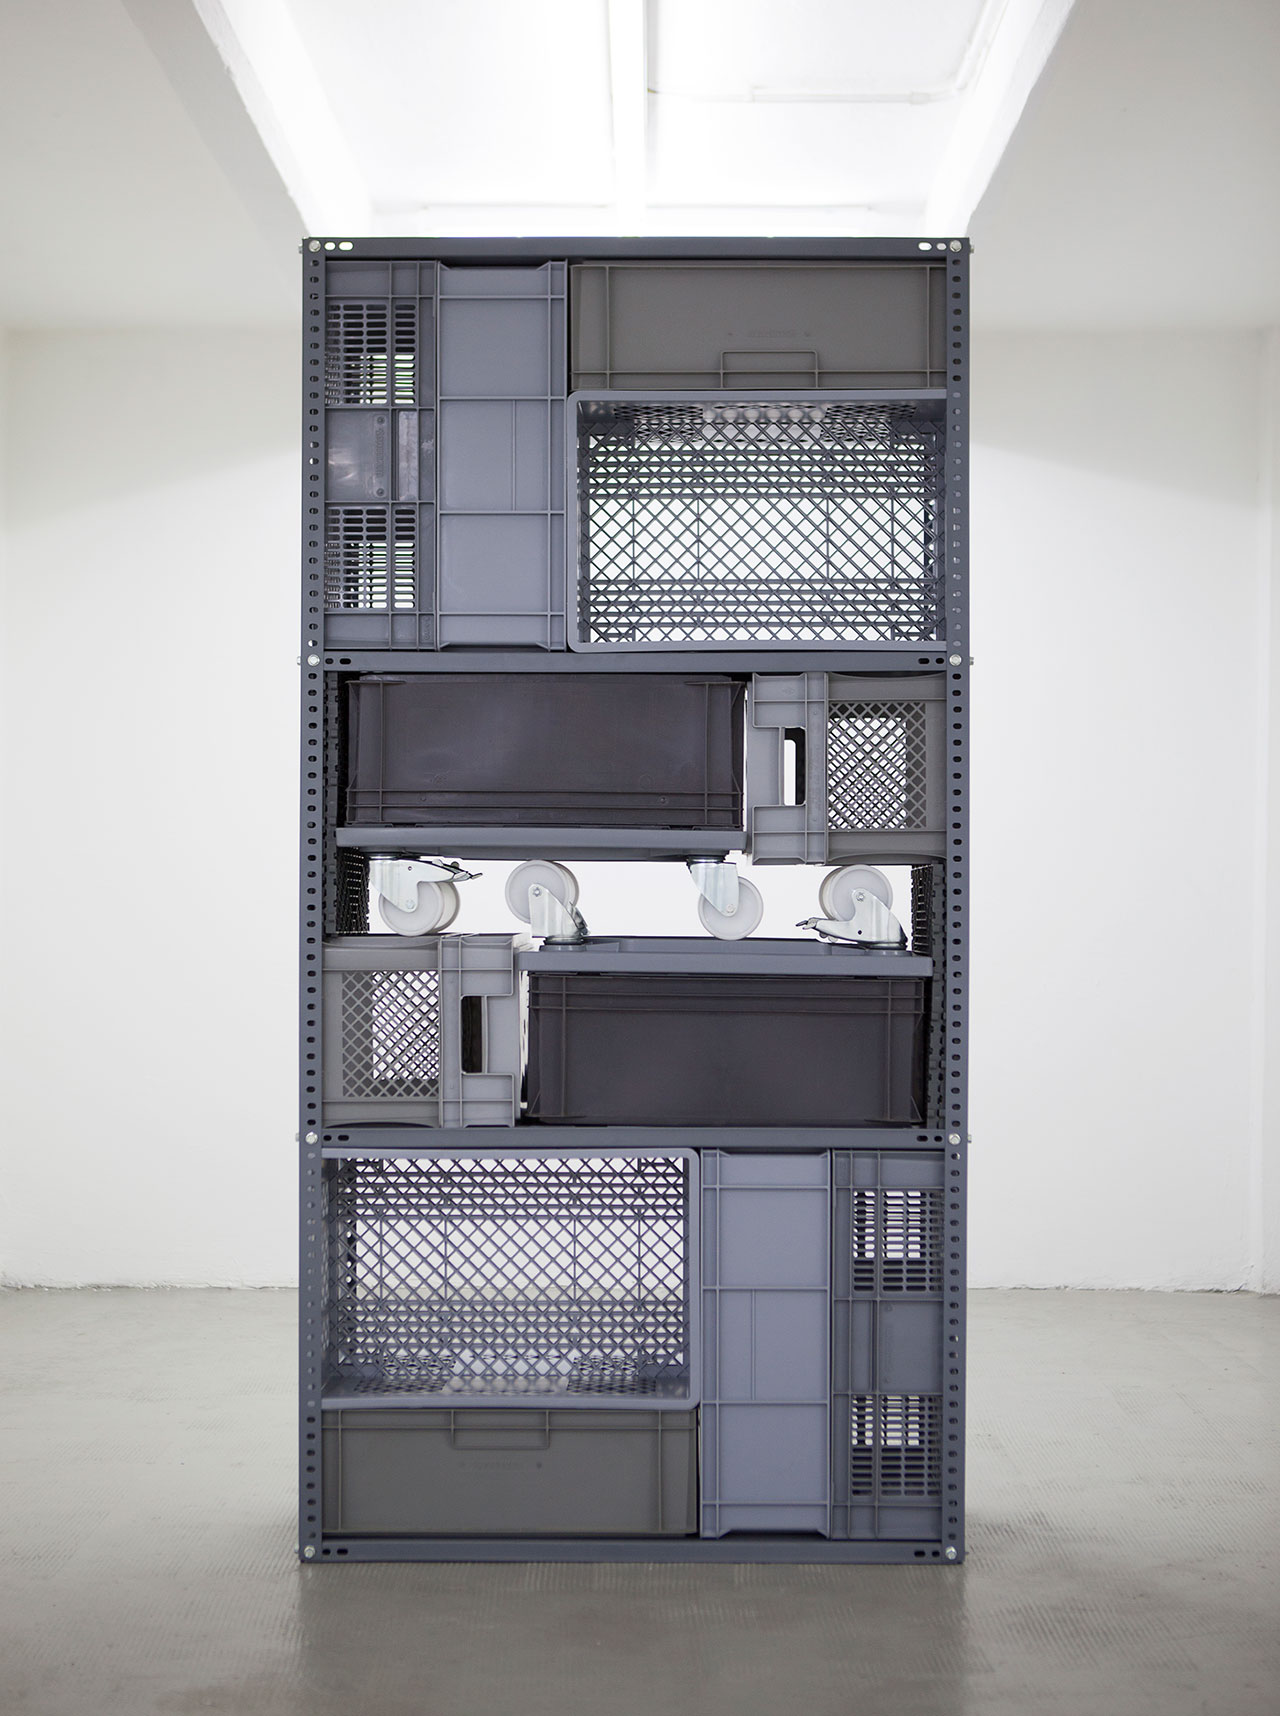 Michael Johansson, Flip shelf – Standing Unit, 2018, grey ordinary items, 200x100x41 cm. Courtesy: The Flat – Massimo Carasi, Milan. Photo © Michael Johansson.